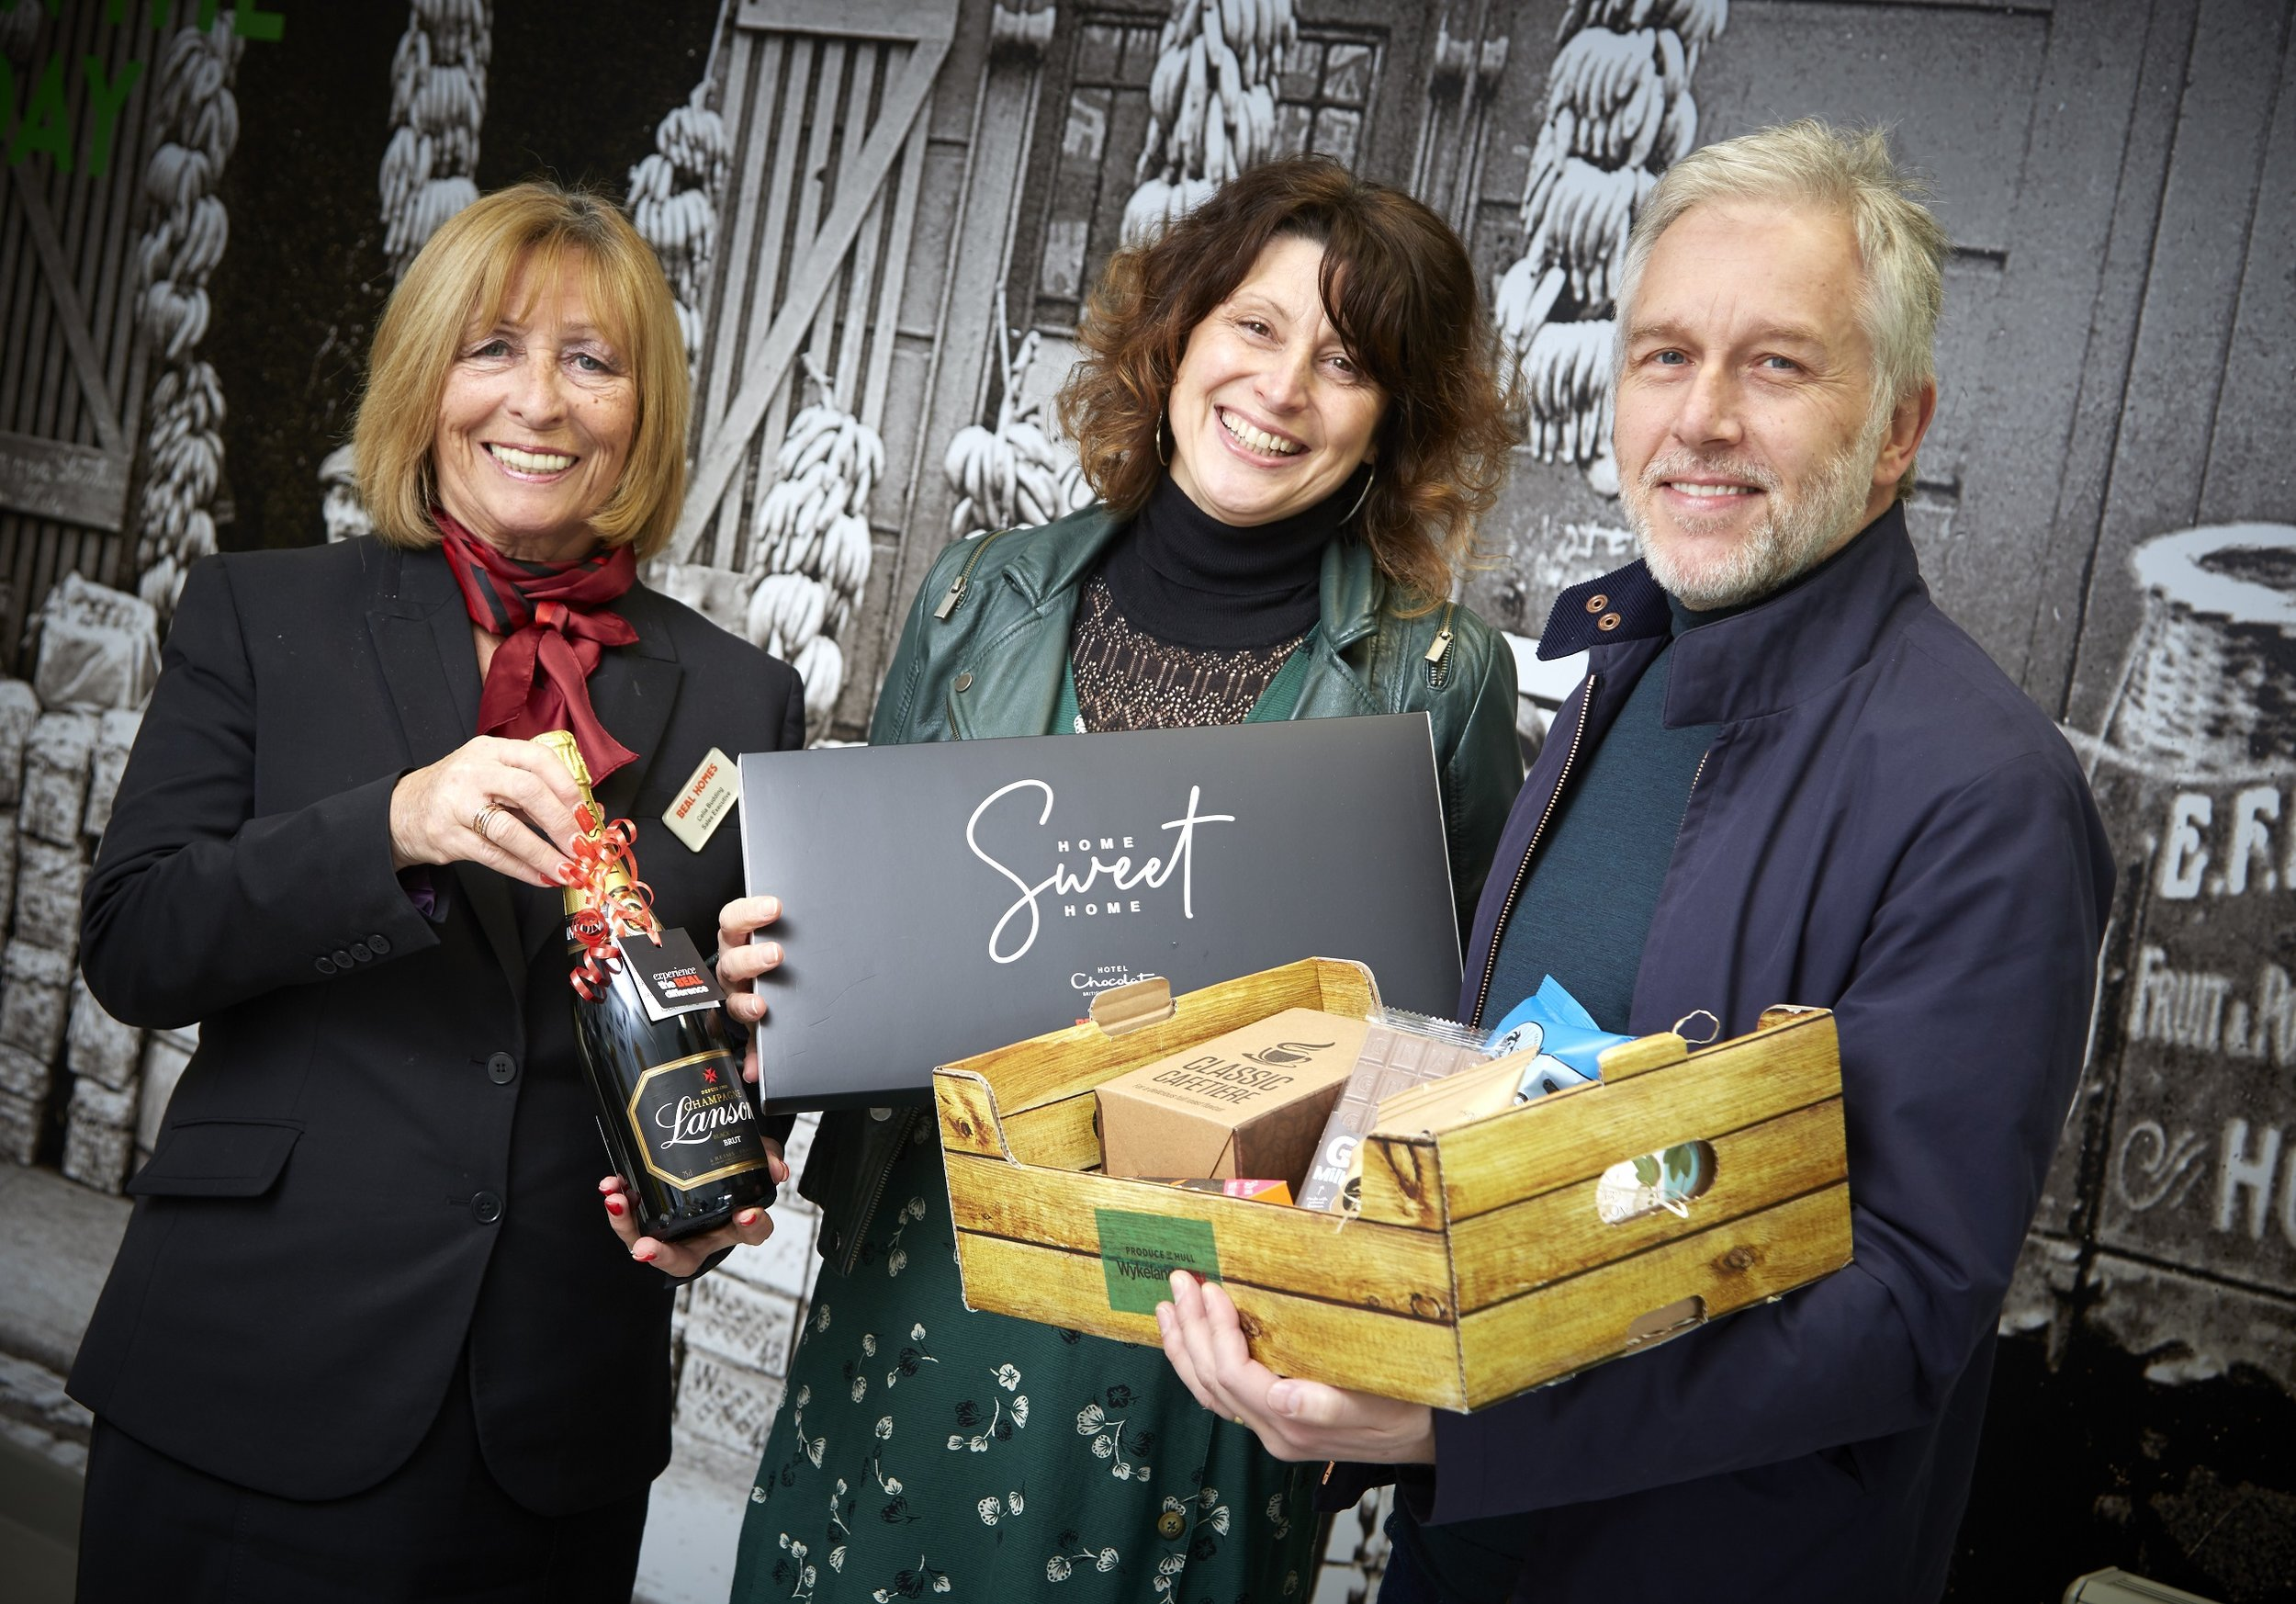 The first residents of the new Fruit Market community, Steve Copeman and Claire Bell, with a welcome hamper to celebrate moving into their new property.